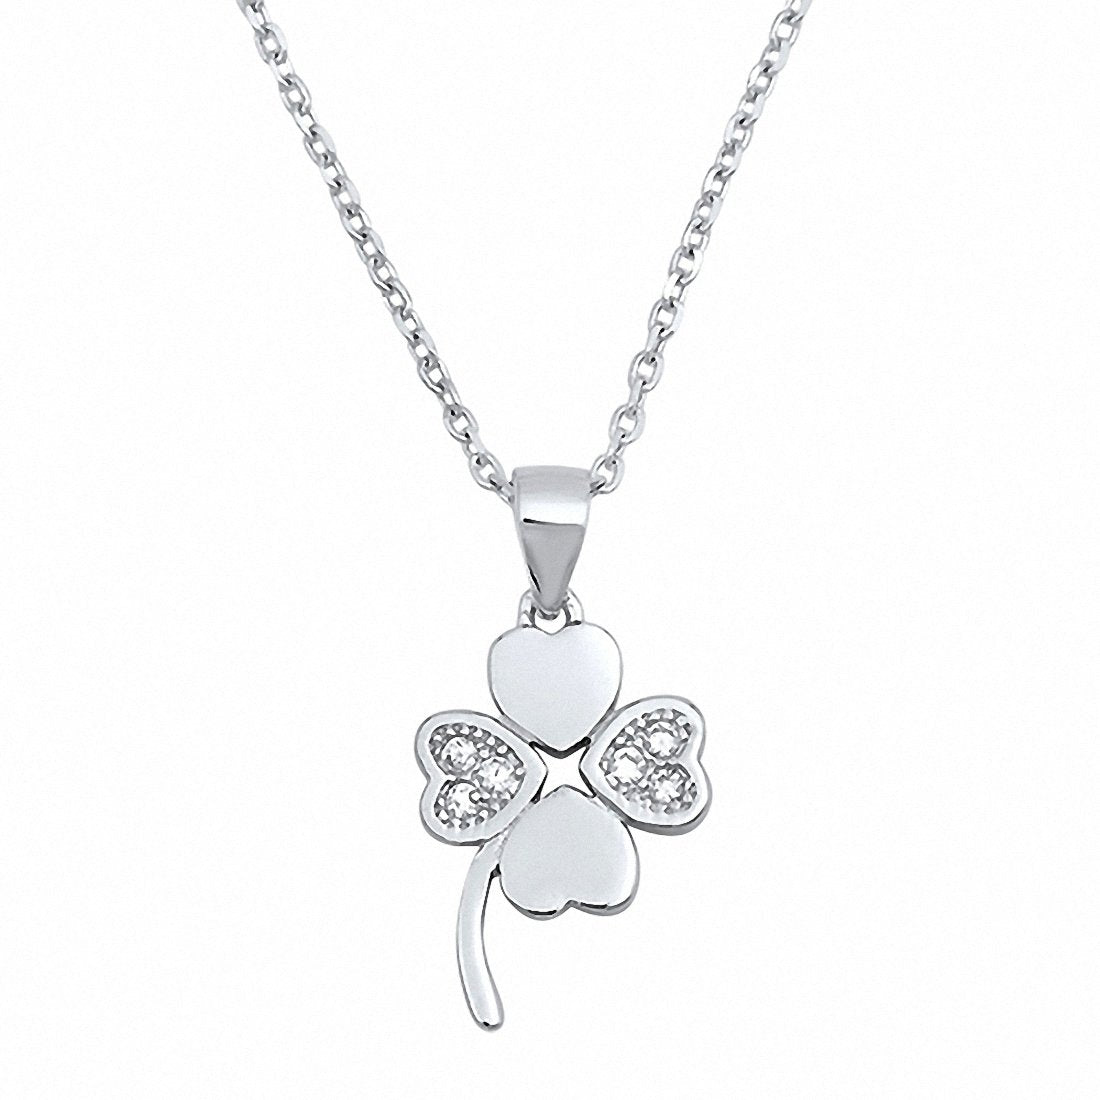 Clover Leaf Necklace Round Simulated Cubic Zirconia 925 Sterling Silver